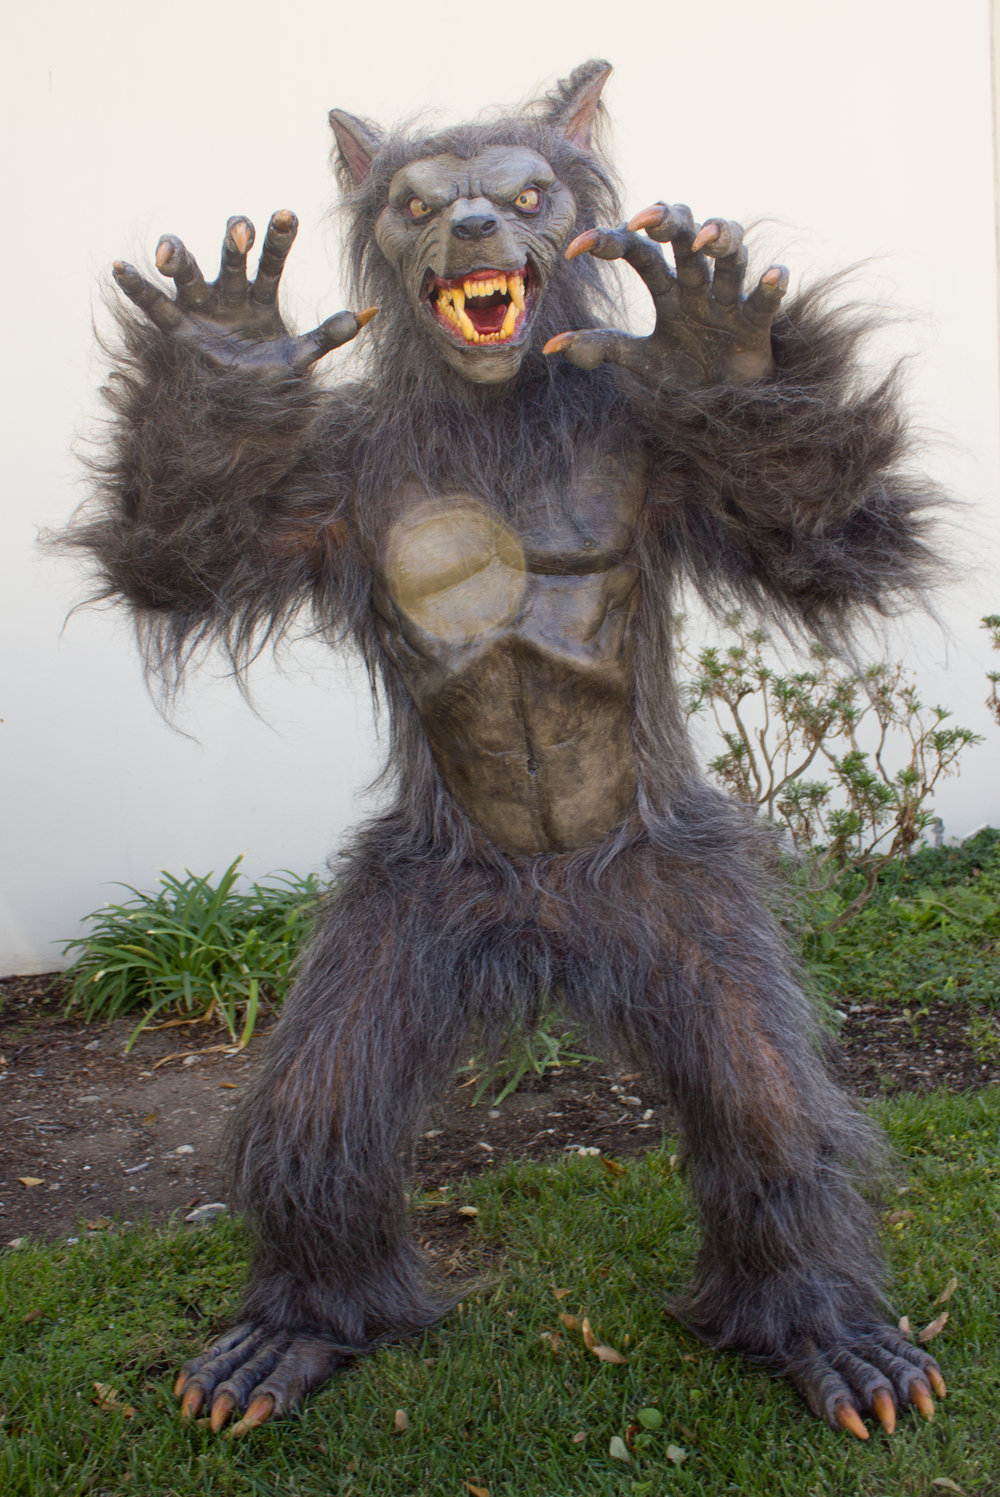 Werewolf for Universal Halloween Horror Nights, Singapore. By Total Fabrications